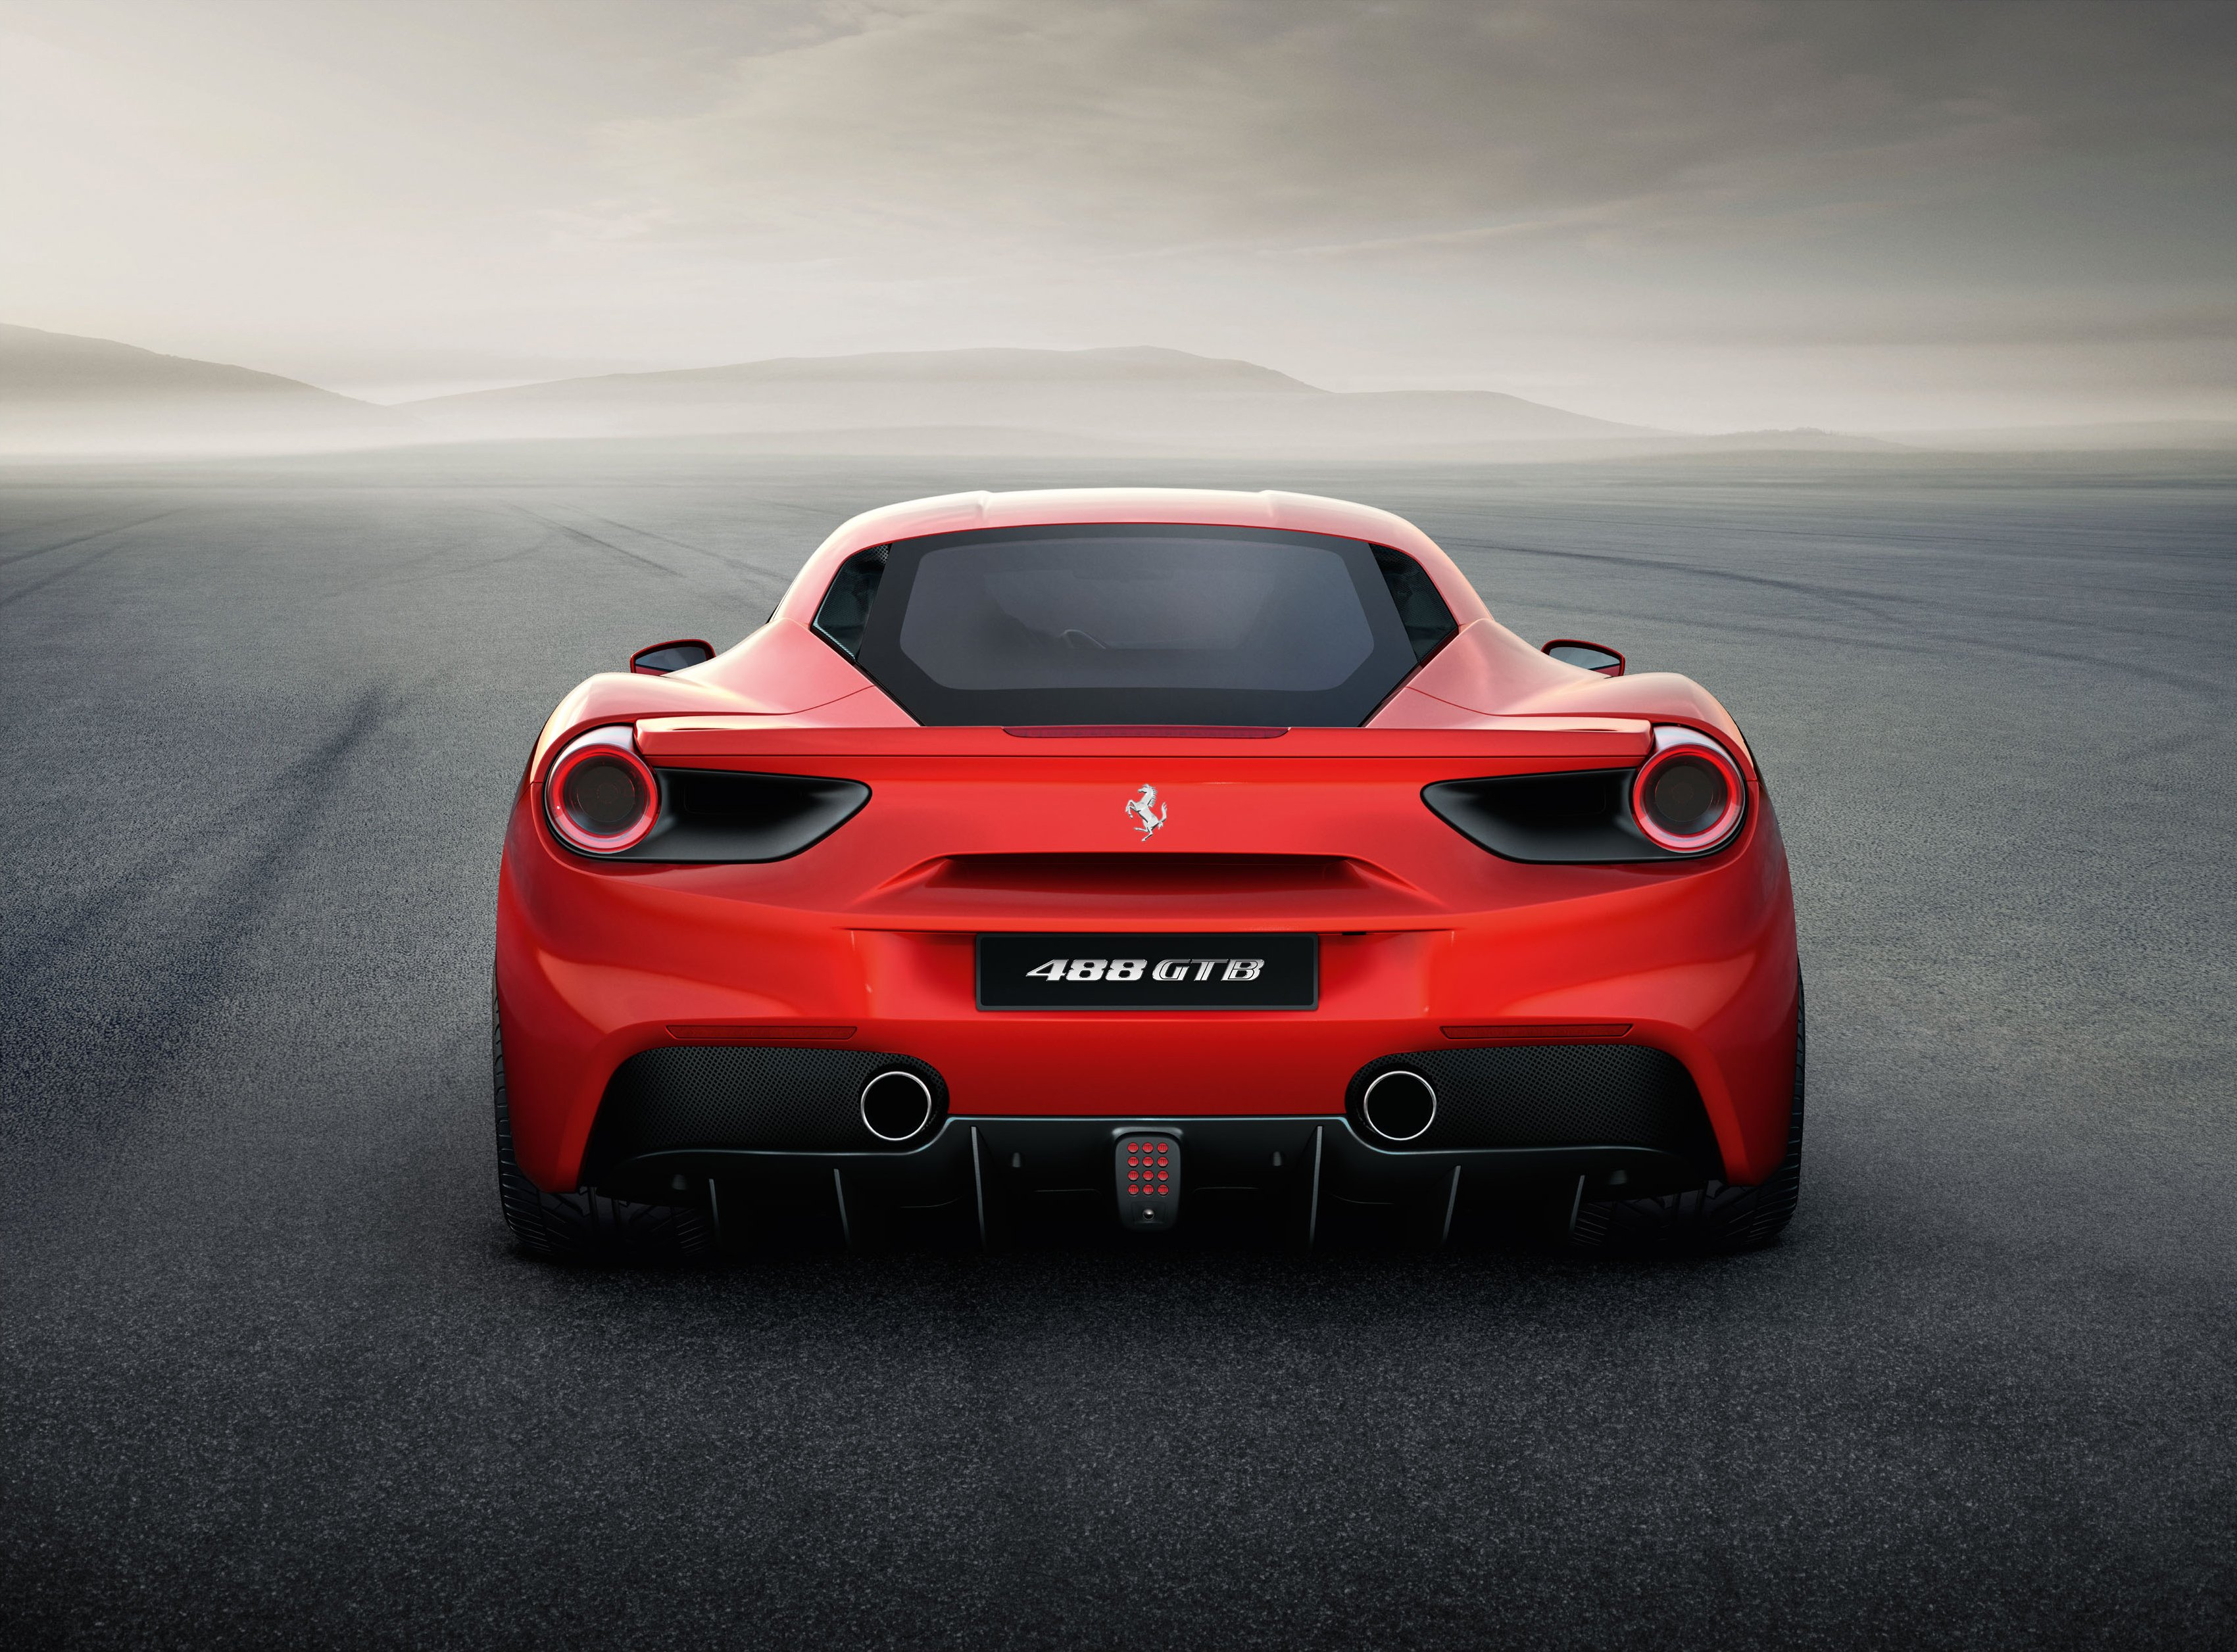 2015 ferrari 488 gtb supercar wallpaper 3401x2512 622445 wallpaperup - Ferrari 488 Iphone Wallpaper